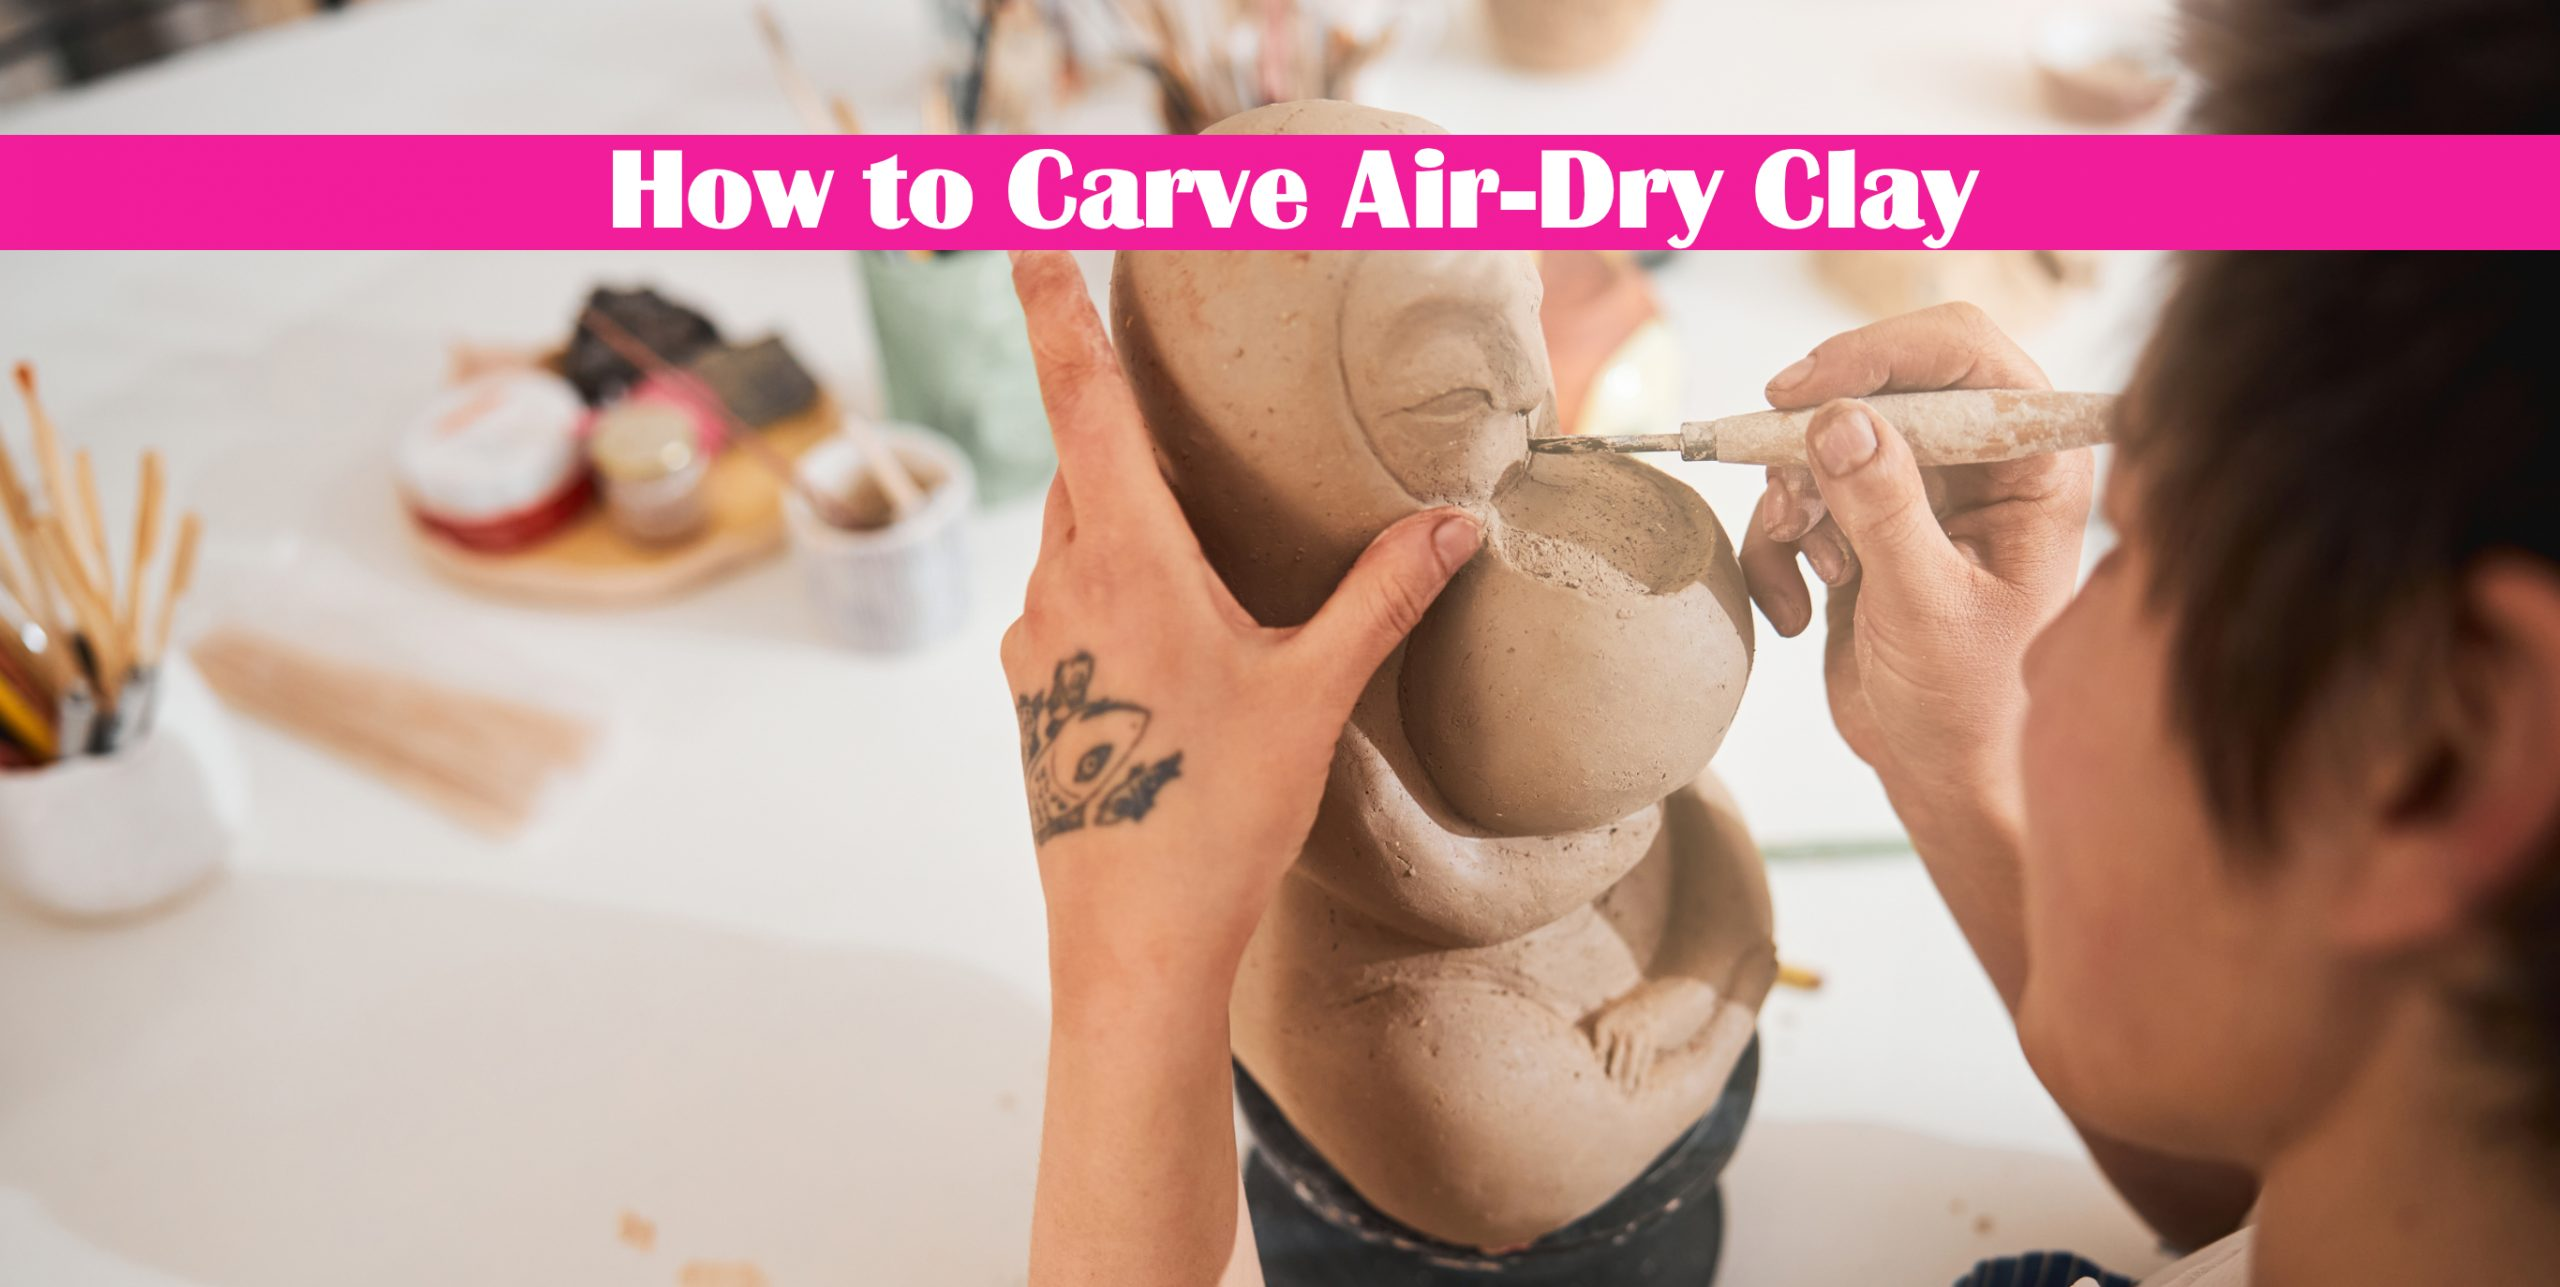 How to Carve Air-Dry Clay